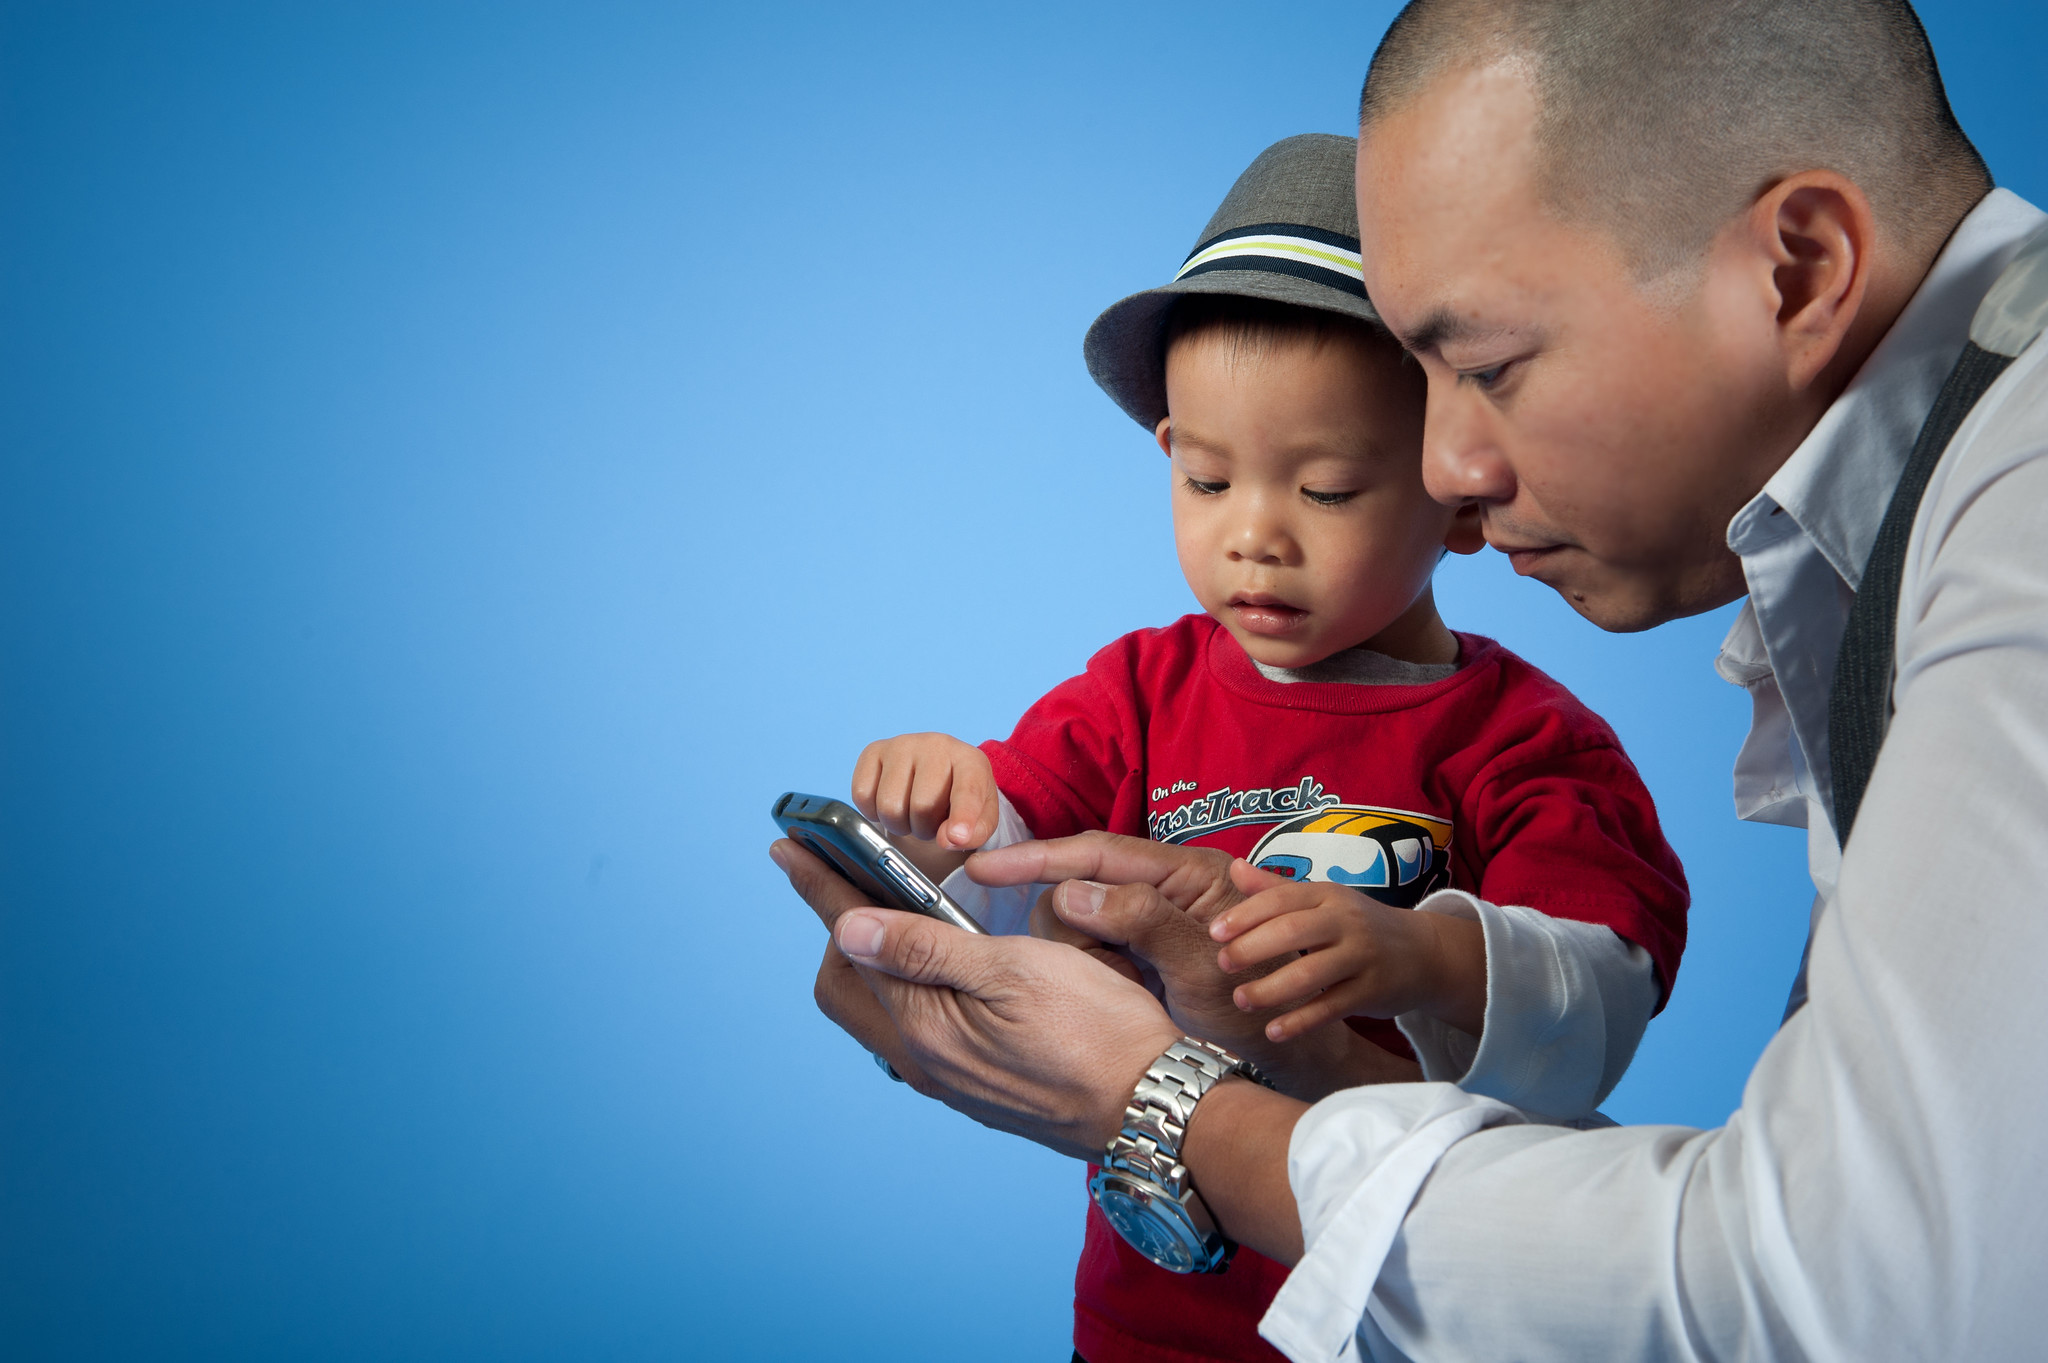 Parenting with Screens: Screen Usage Self-Assessment